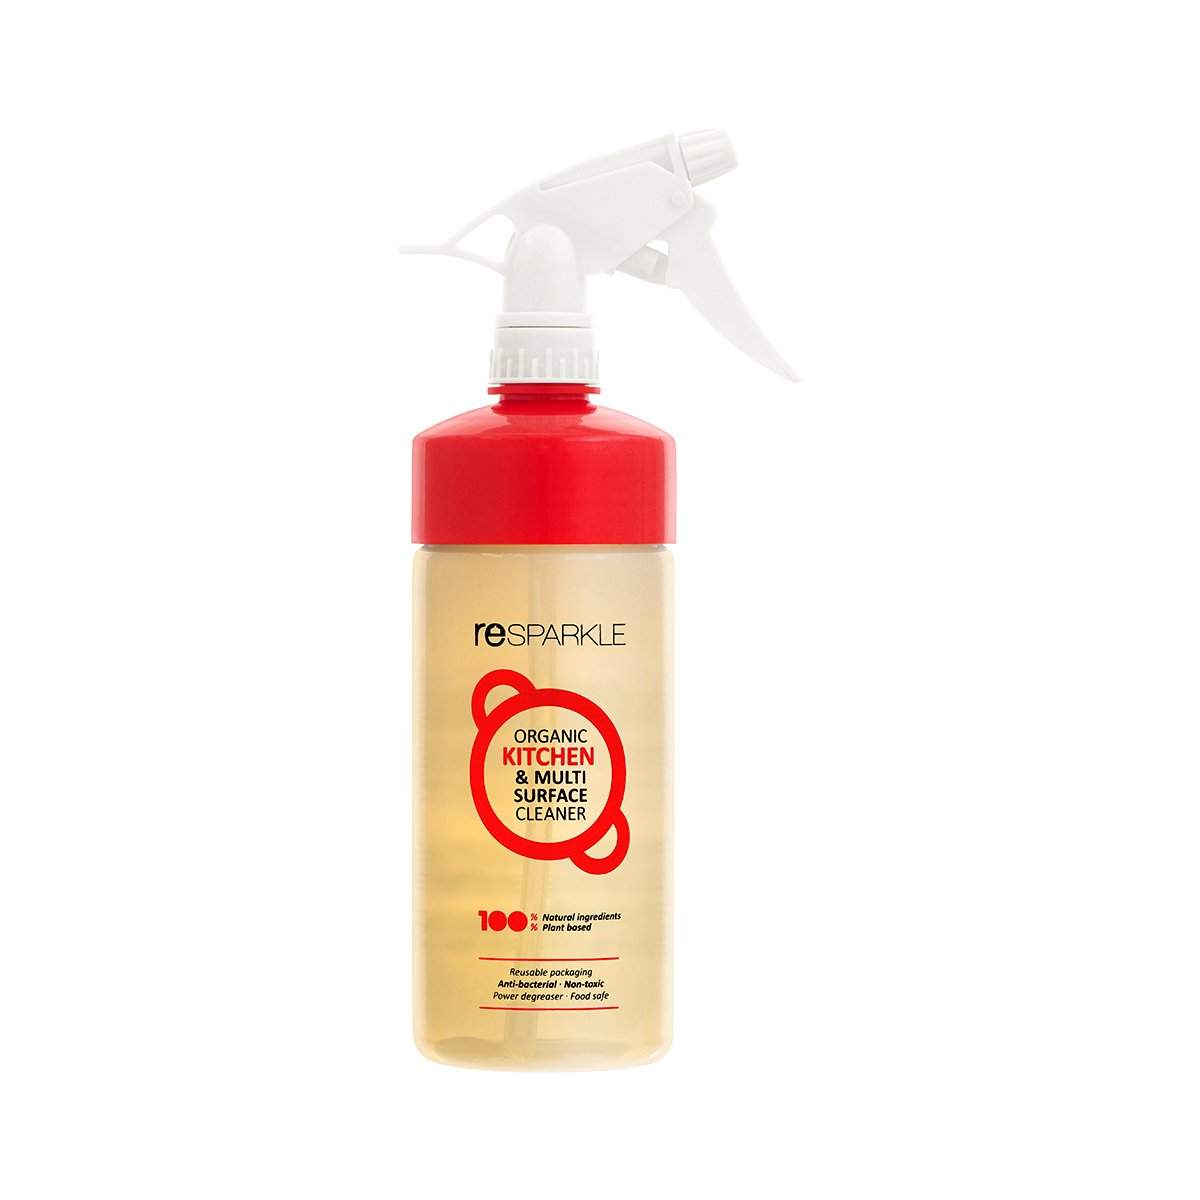 Resparkle Kitchen & Multi Surface Cleaner Organic 500mL